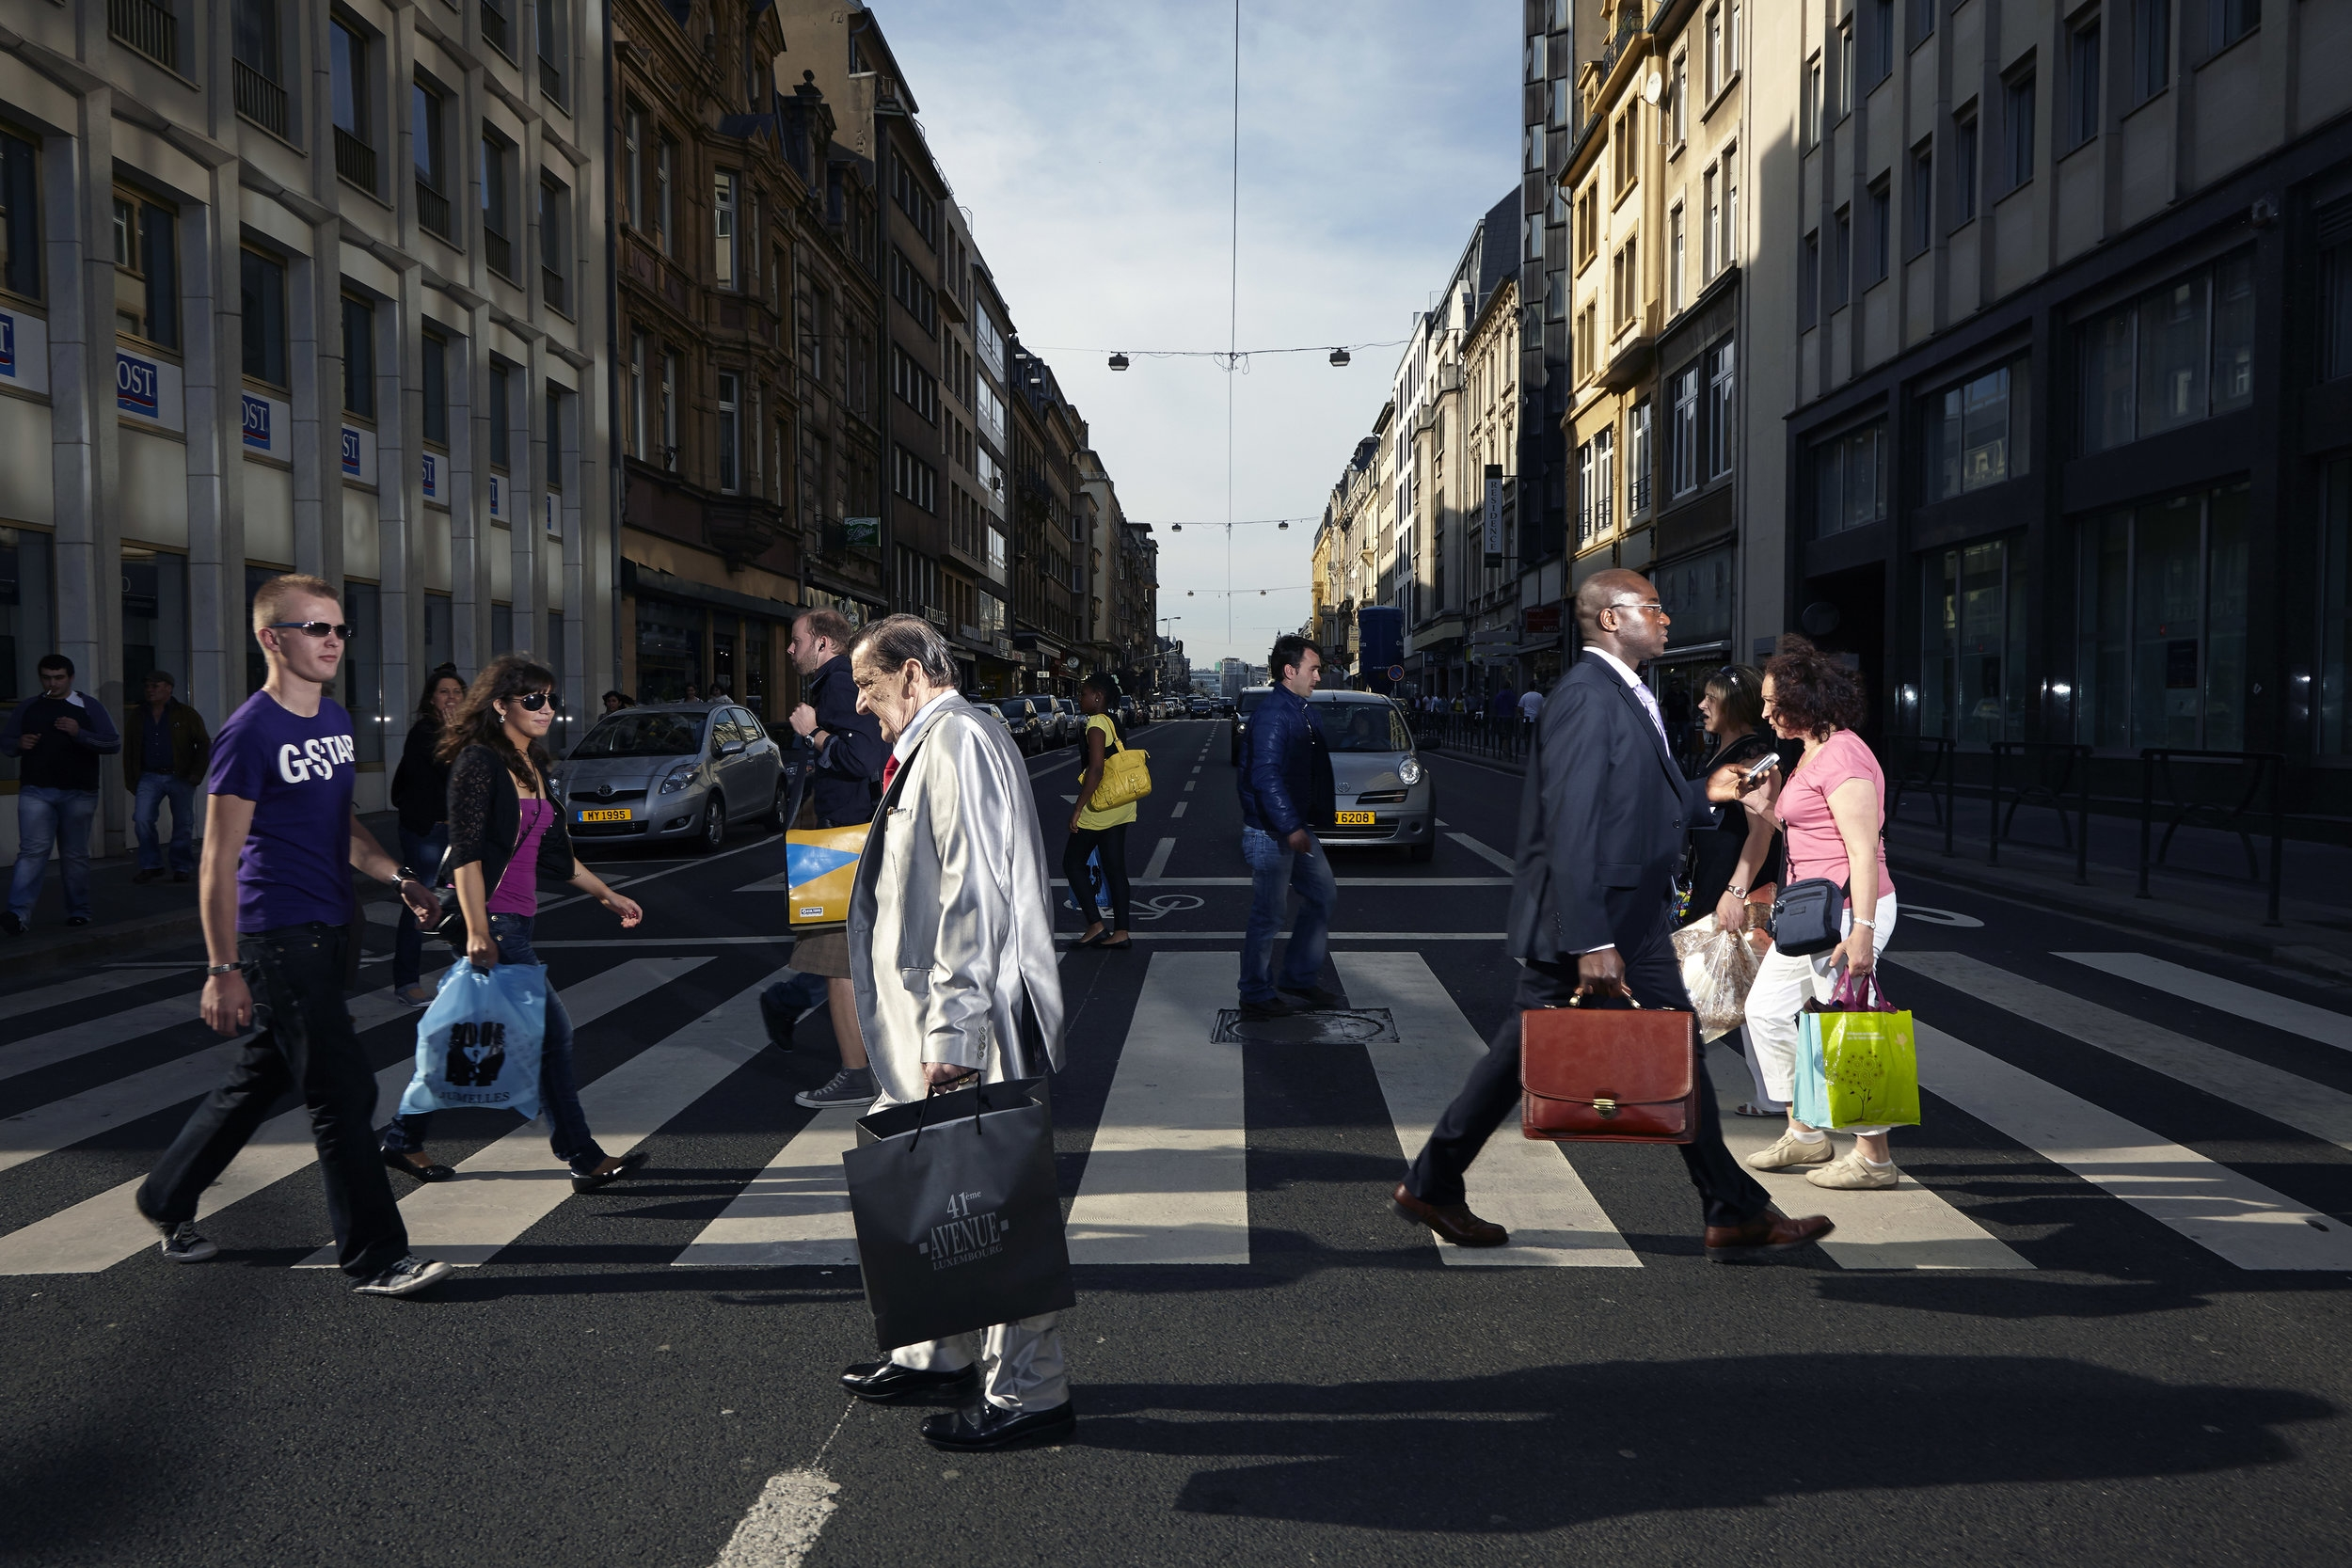 A photo from the project Crossing Europe in the city and country Luxembourg